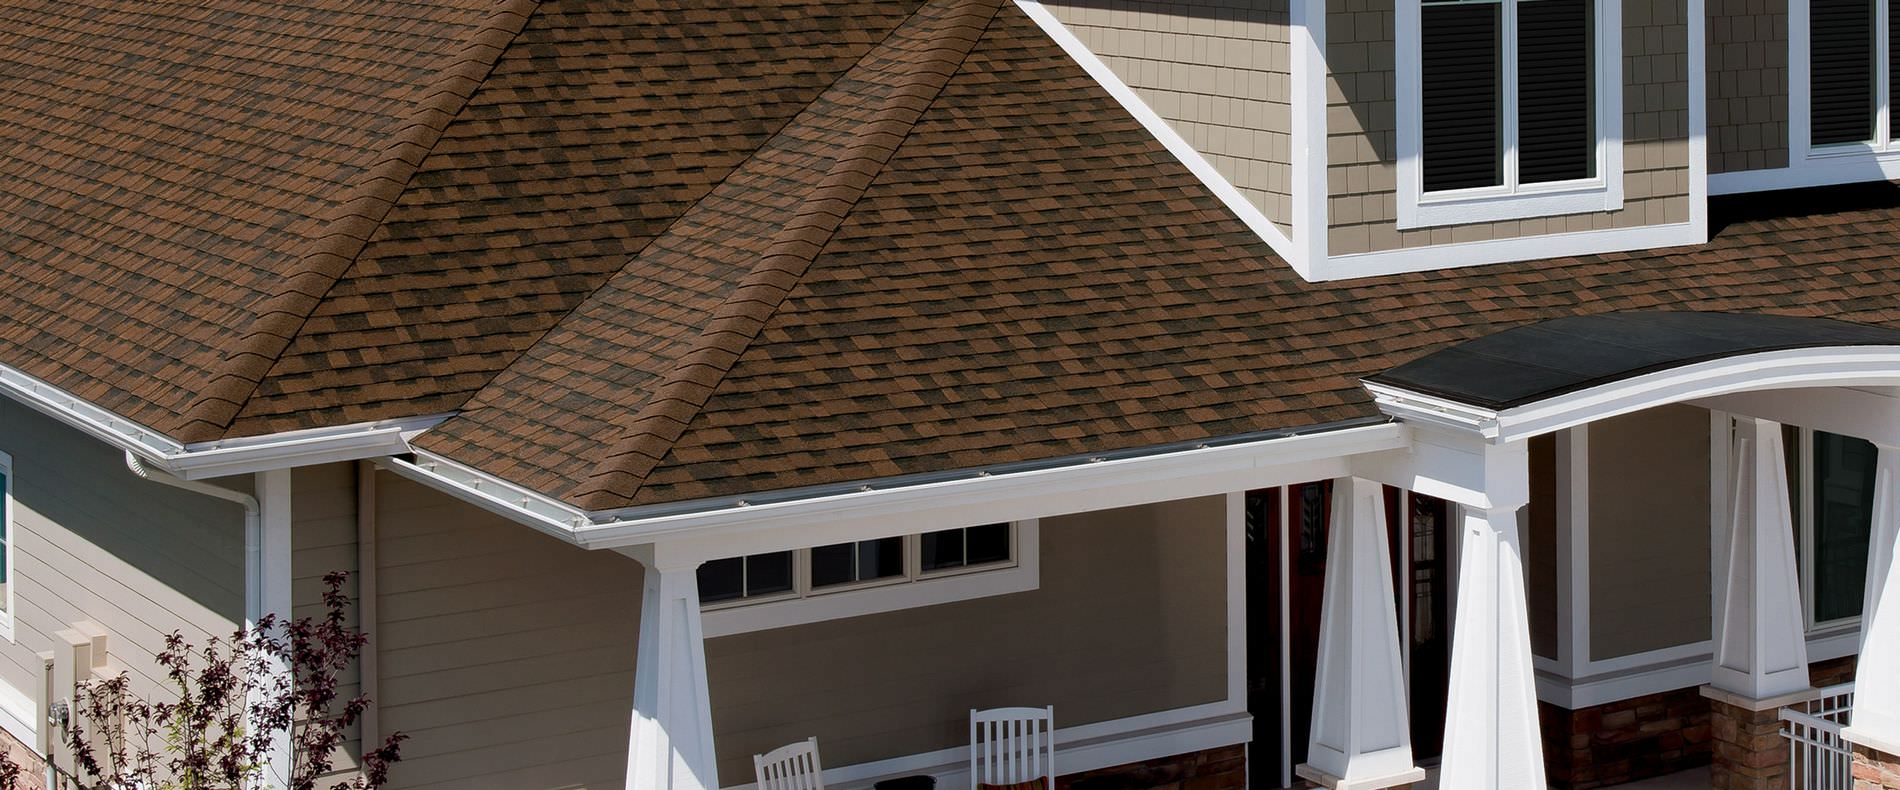 Heritage Shingles | Tamko Heritage Shingle Colors | Tamko Heritage Shingles Colors